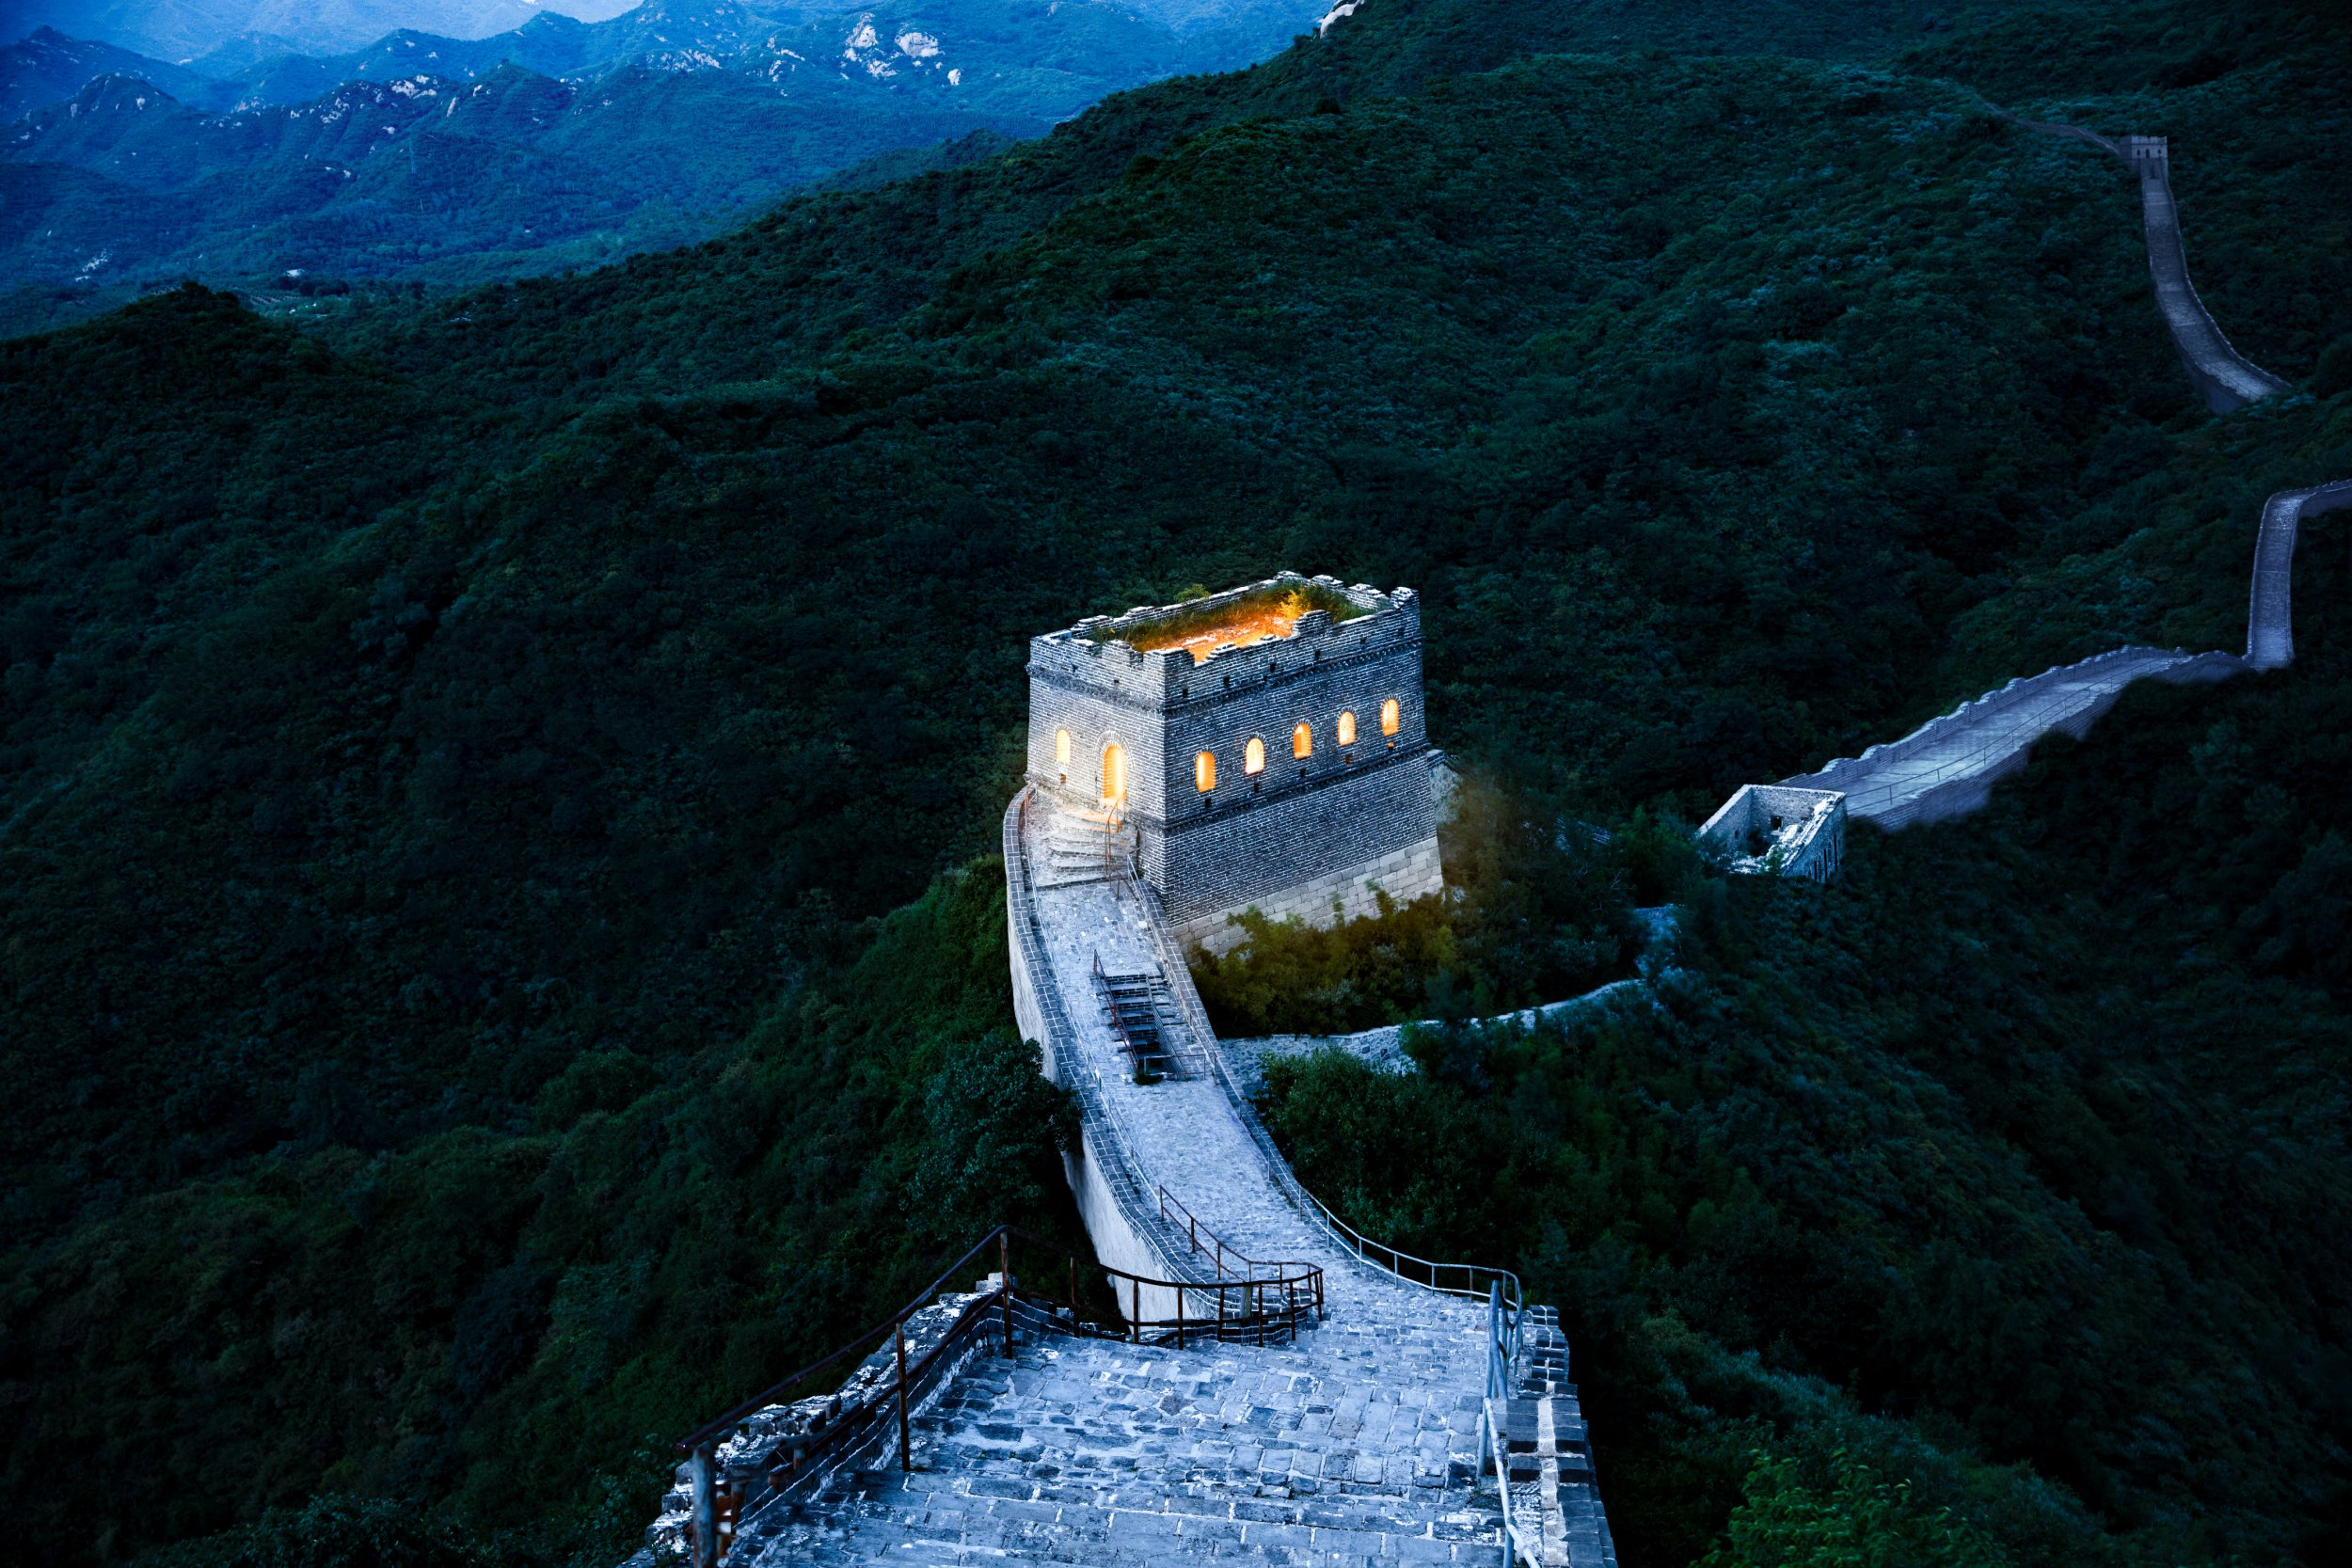 Airbnb is offering the chance to win a night on the Great Wall of China